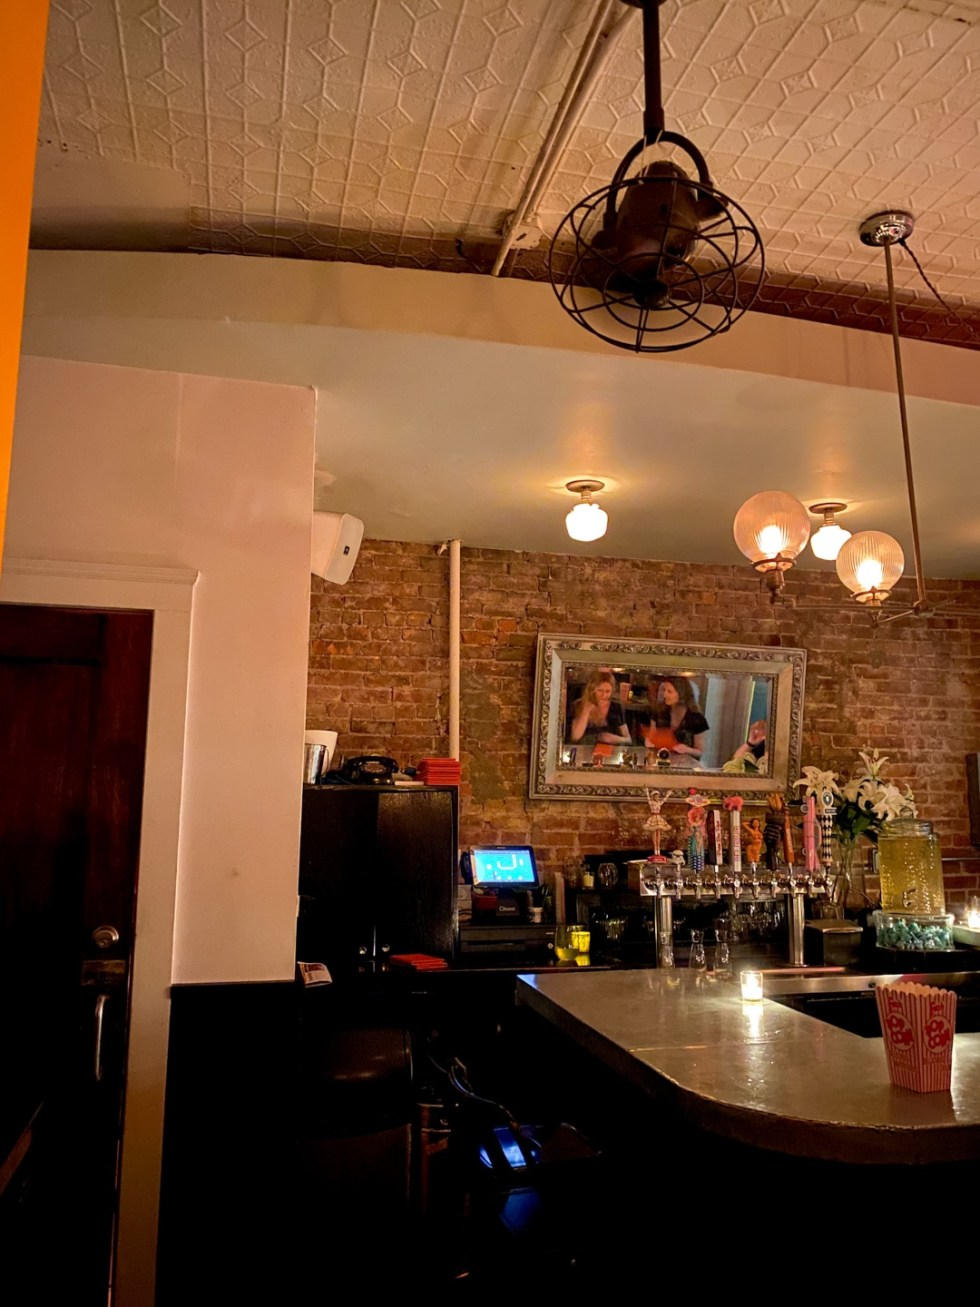 NYC Summer Weekend: Things to Do in NYC in the Summer - I'm Fixin' To - @imfixintoblog   NYC Summer Weekend by popular NC travel blog, I'm Fixin' To: image of a bar.